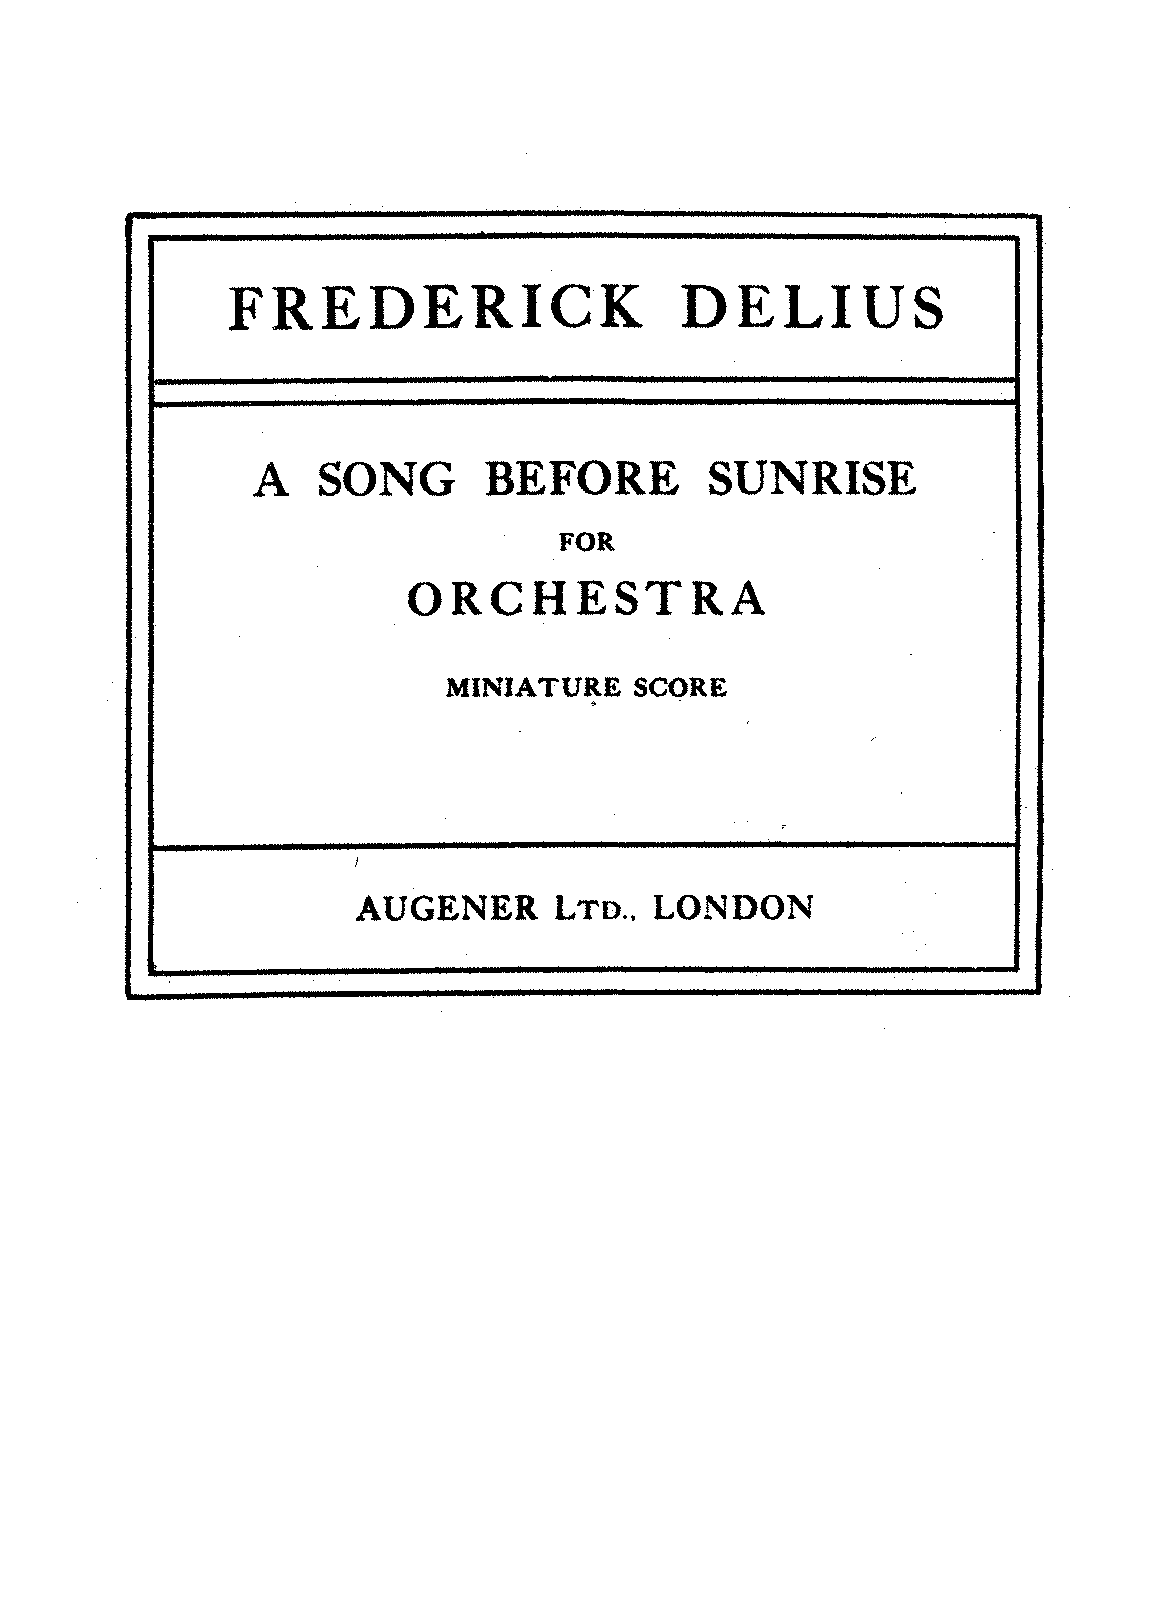 PMLP95505-Delius - A Song Before Sunrise for Orchestra (1918).pdf